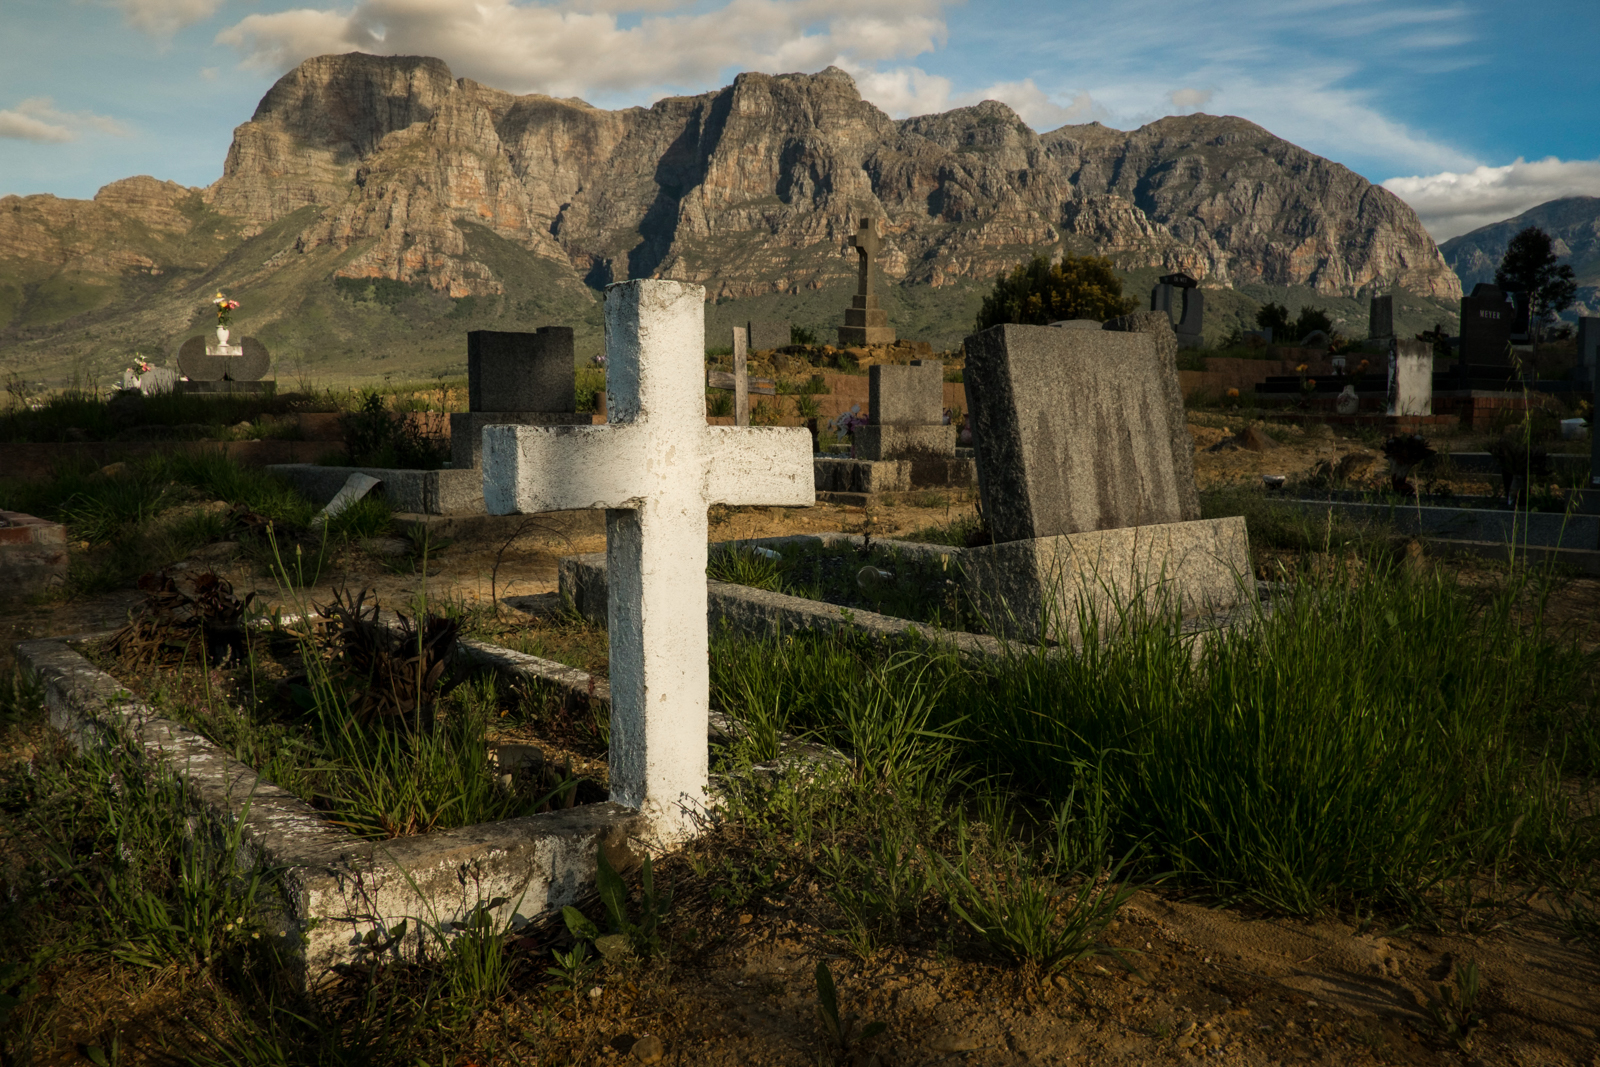 The small cementery in the town of Pniel leads to wine country Stellenbosch and Franschhoek in the Western Cape.  This part of South Africa is well known for it\'s vineyards and fine wines.. . Photos taken in South Africa by Anacleto Rapping ©2012